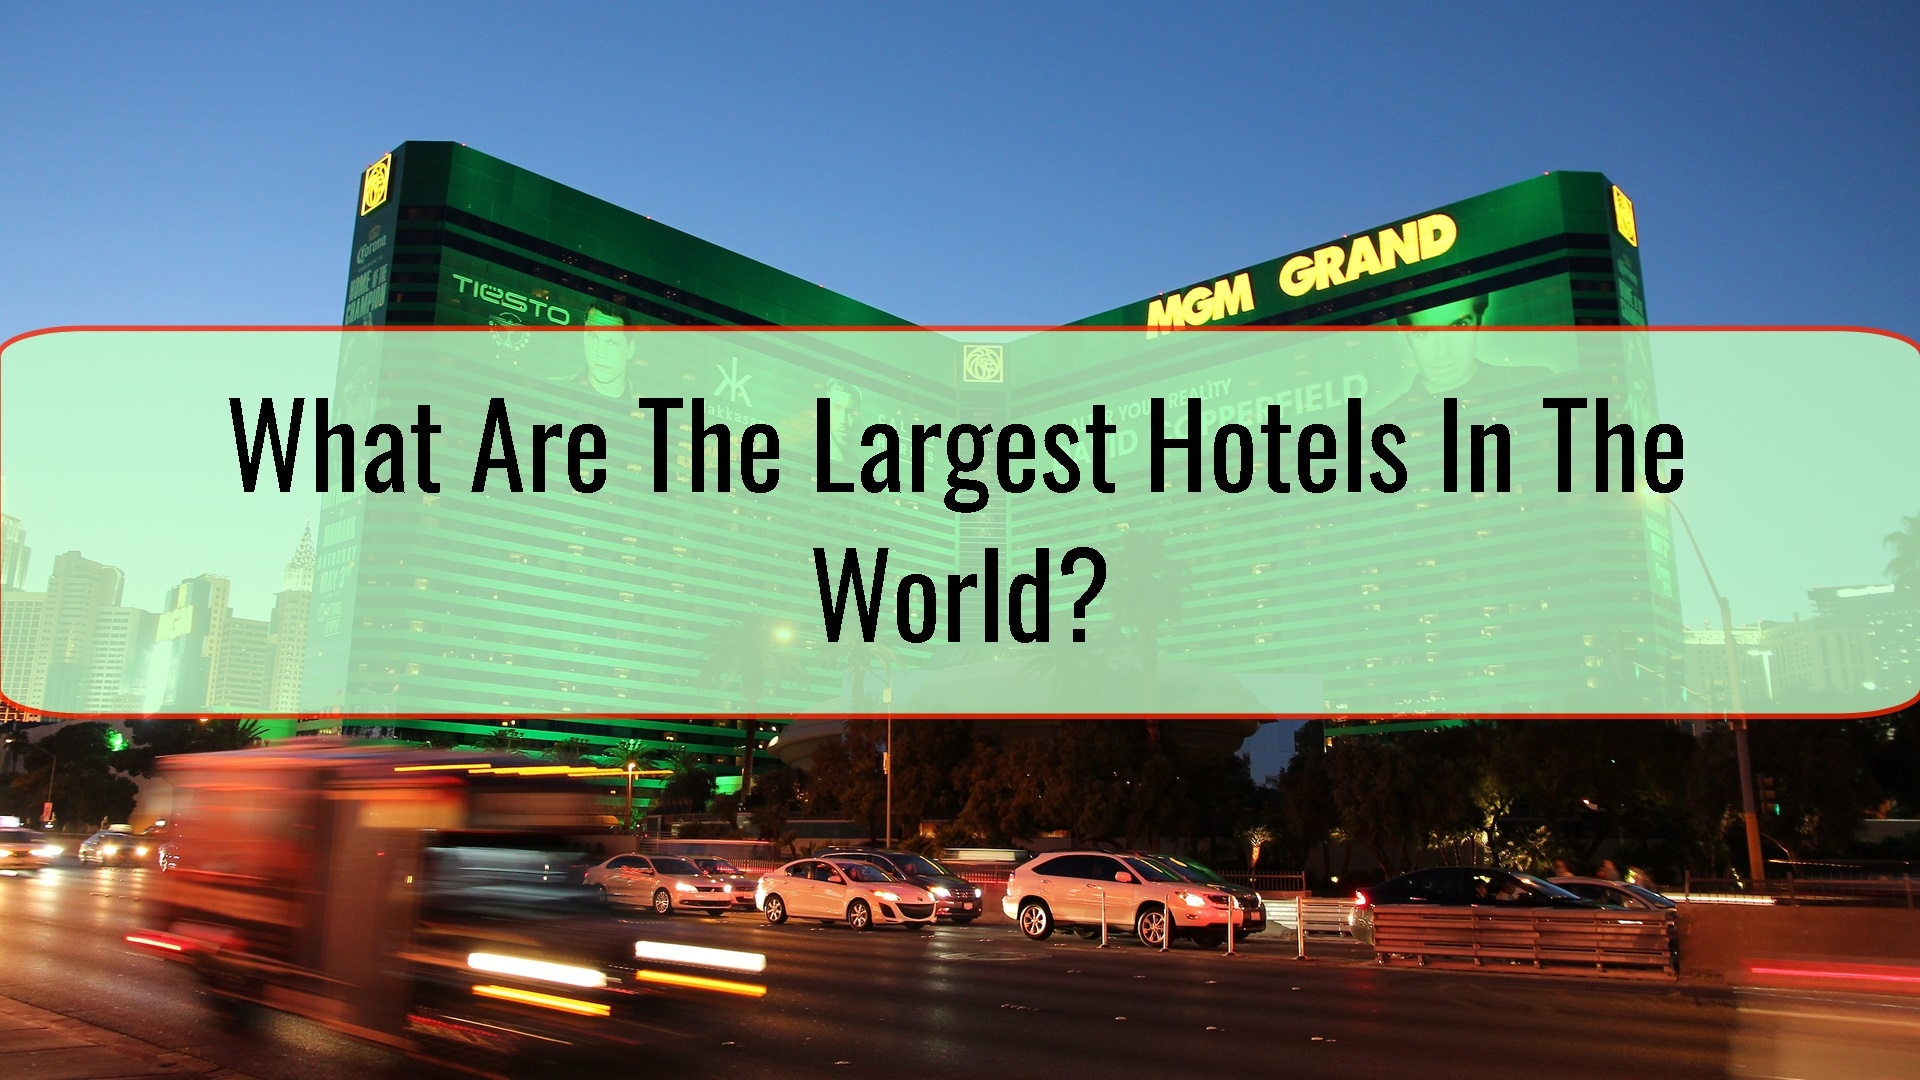 What Are The Largest Hotels In The World?